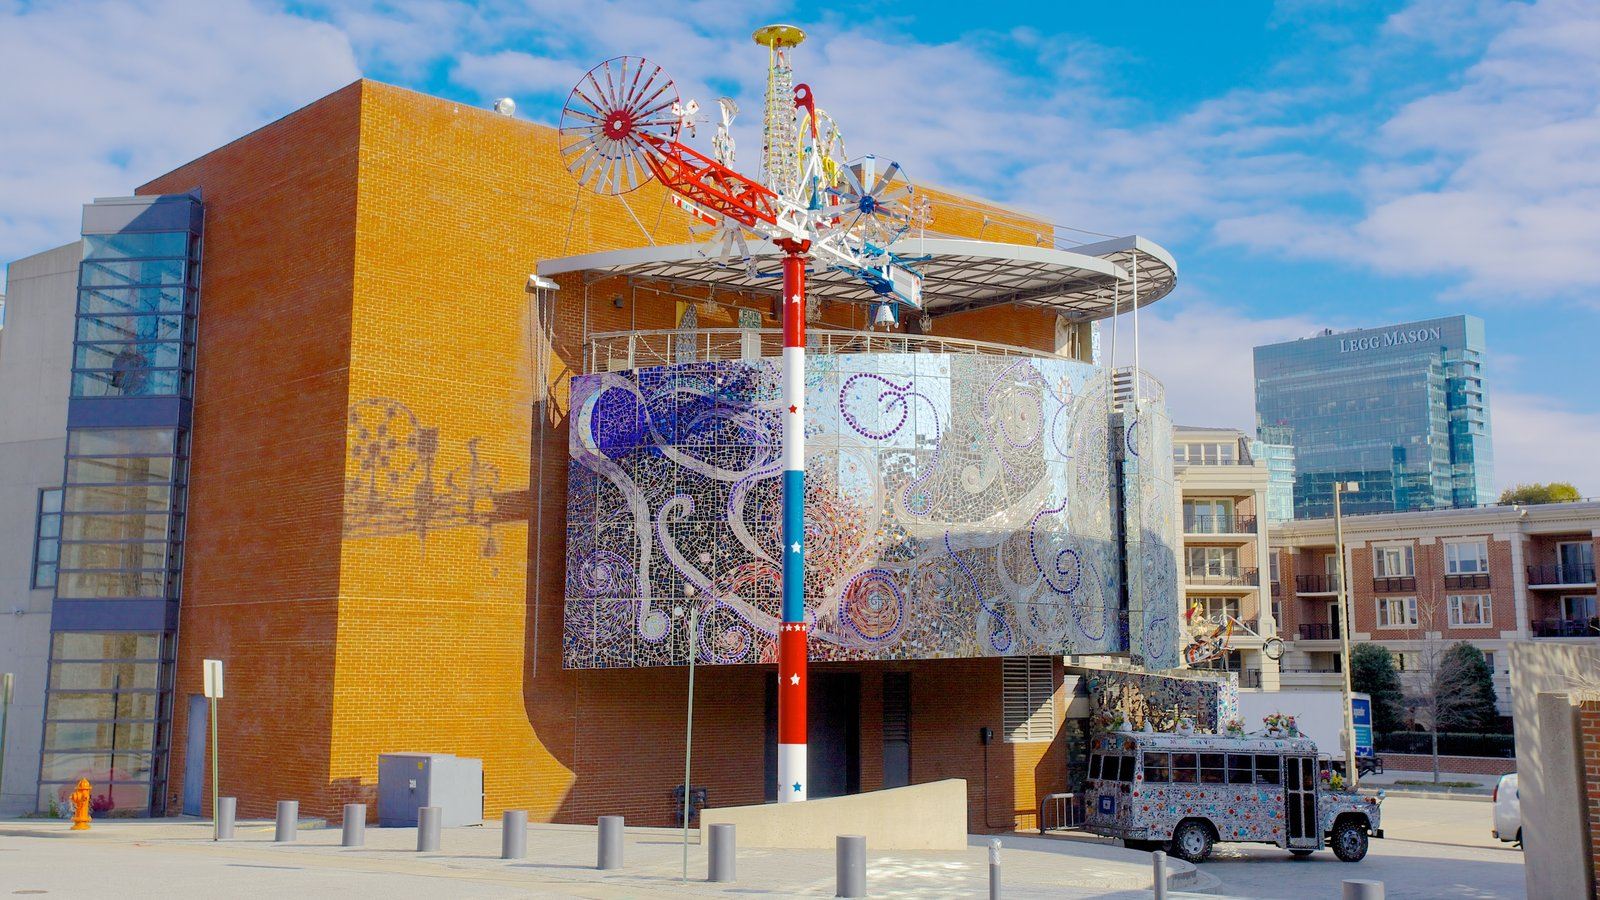 American Visionary Art Museum showing a city and art